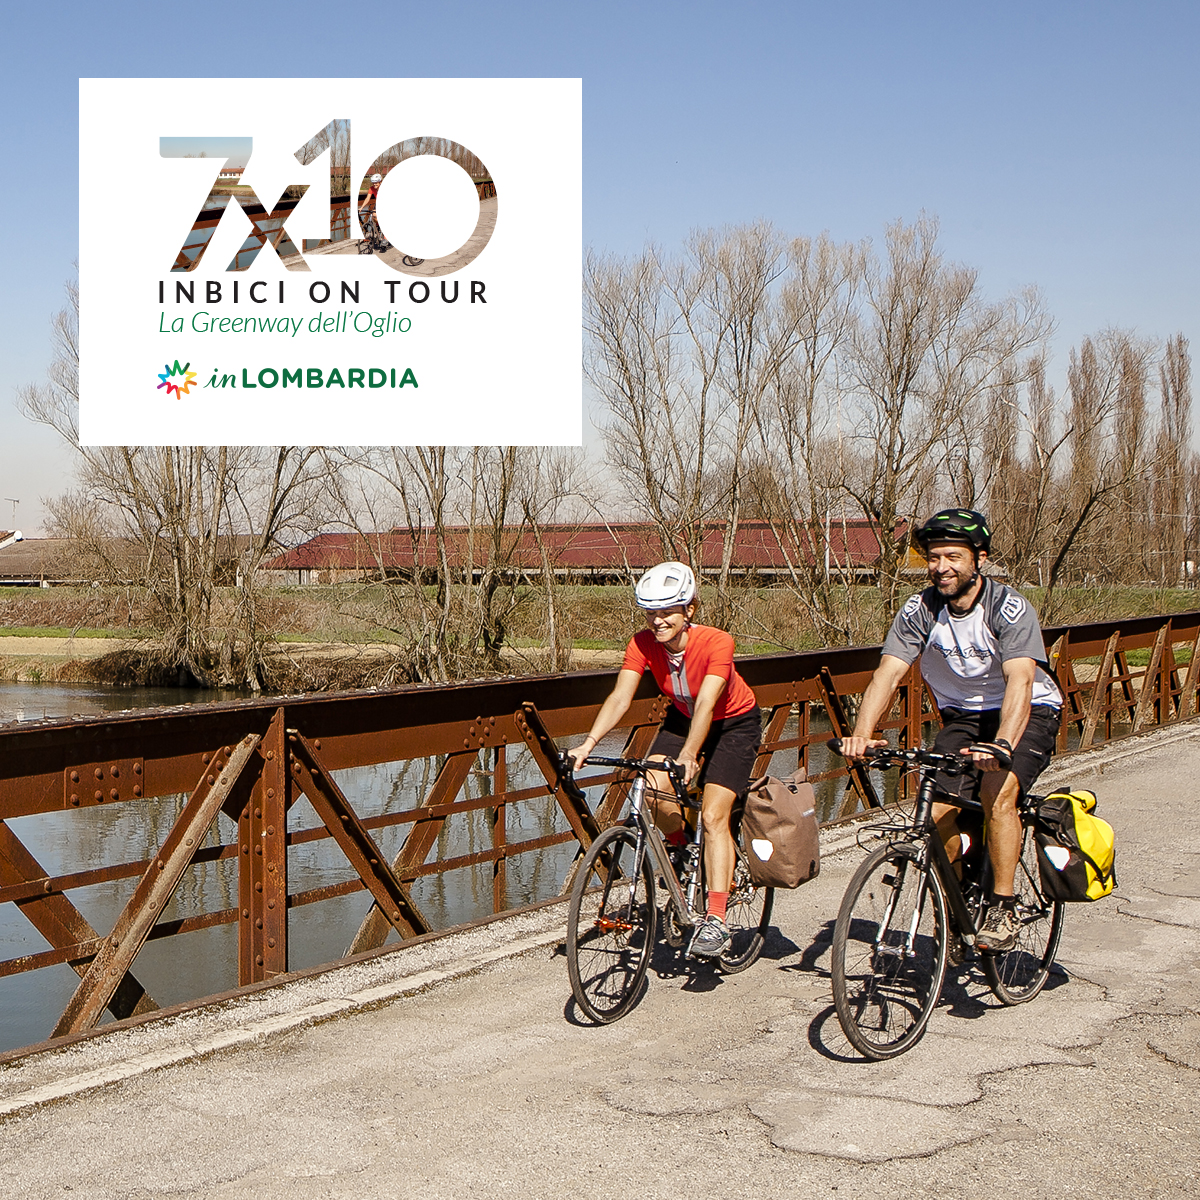 Cicloturismo in Lombardia